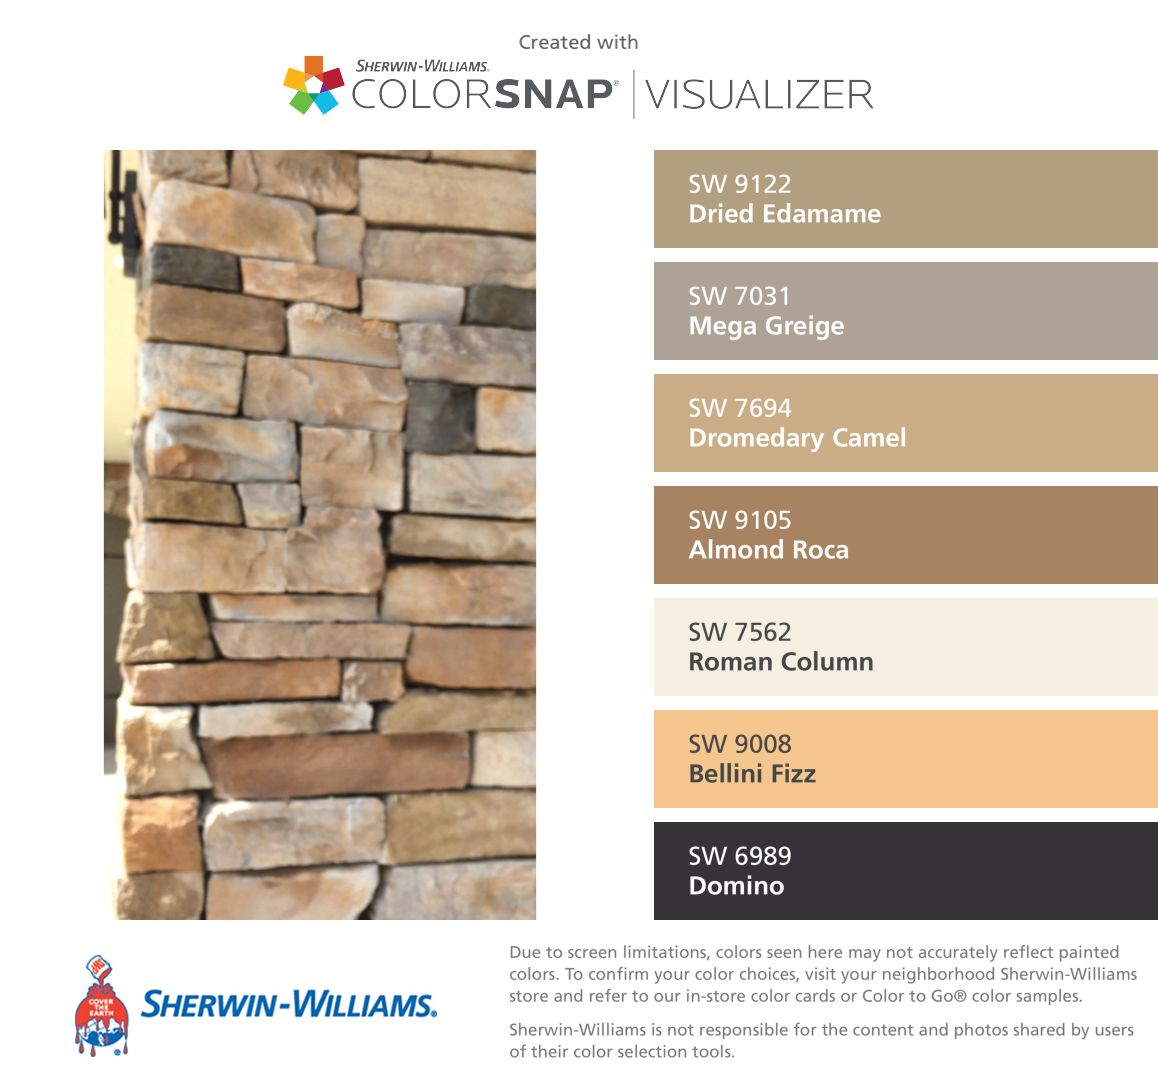 I Found These Colors With Colorsnap Visualizer For Iphone By Sherwin Williams Dried Edamame